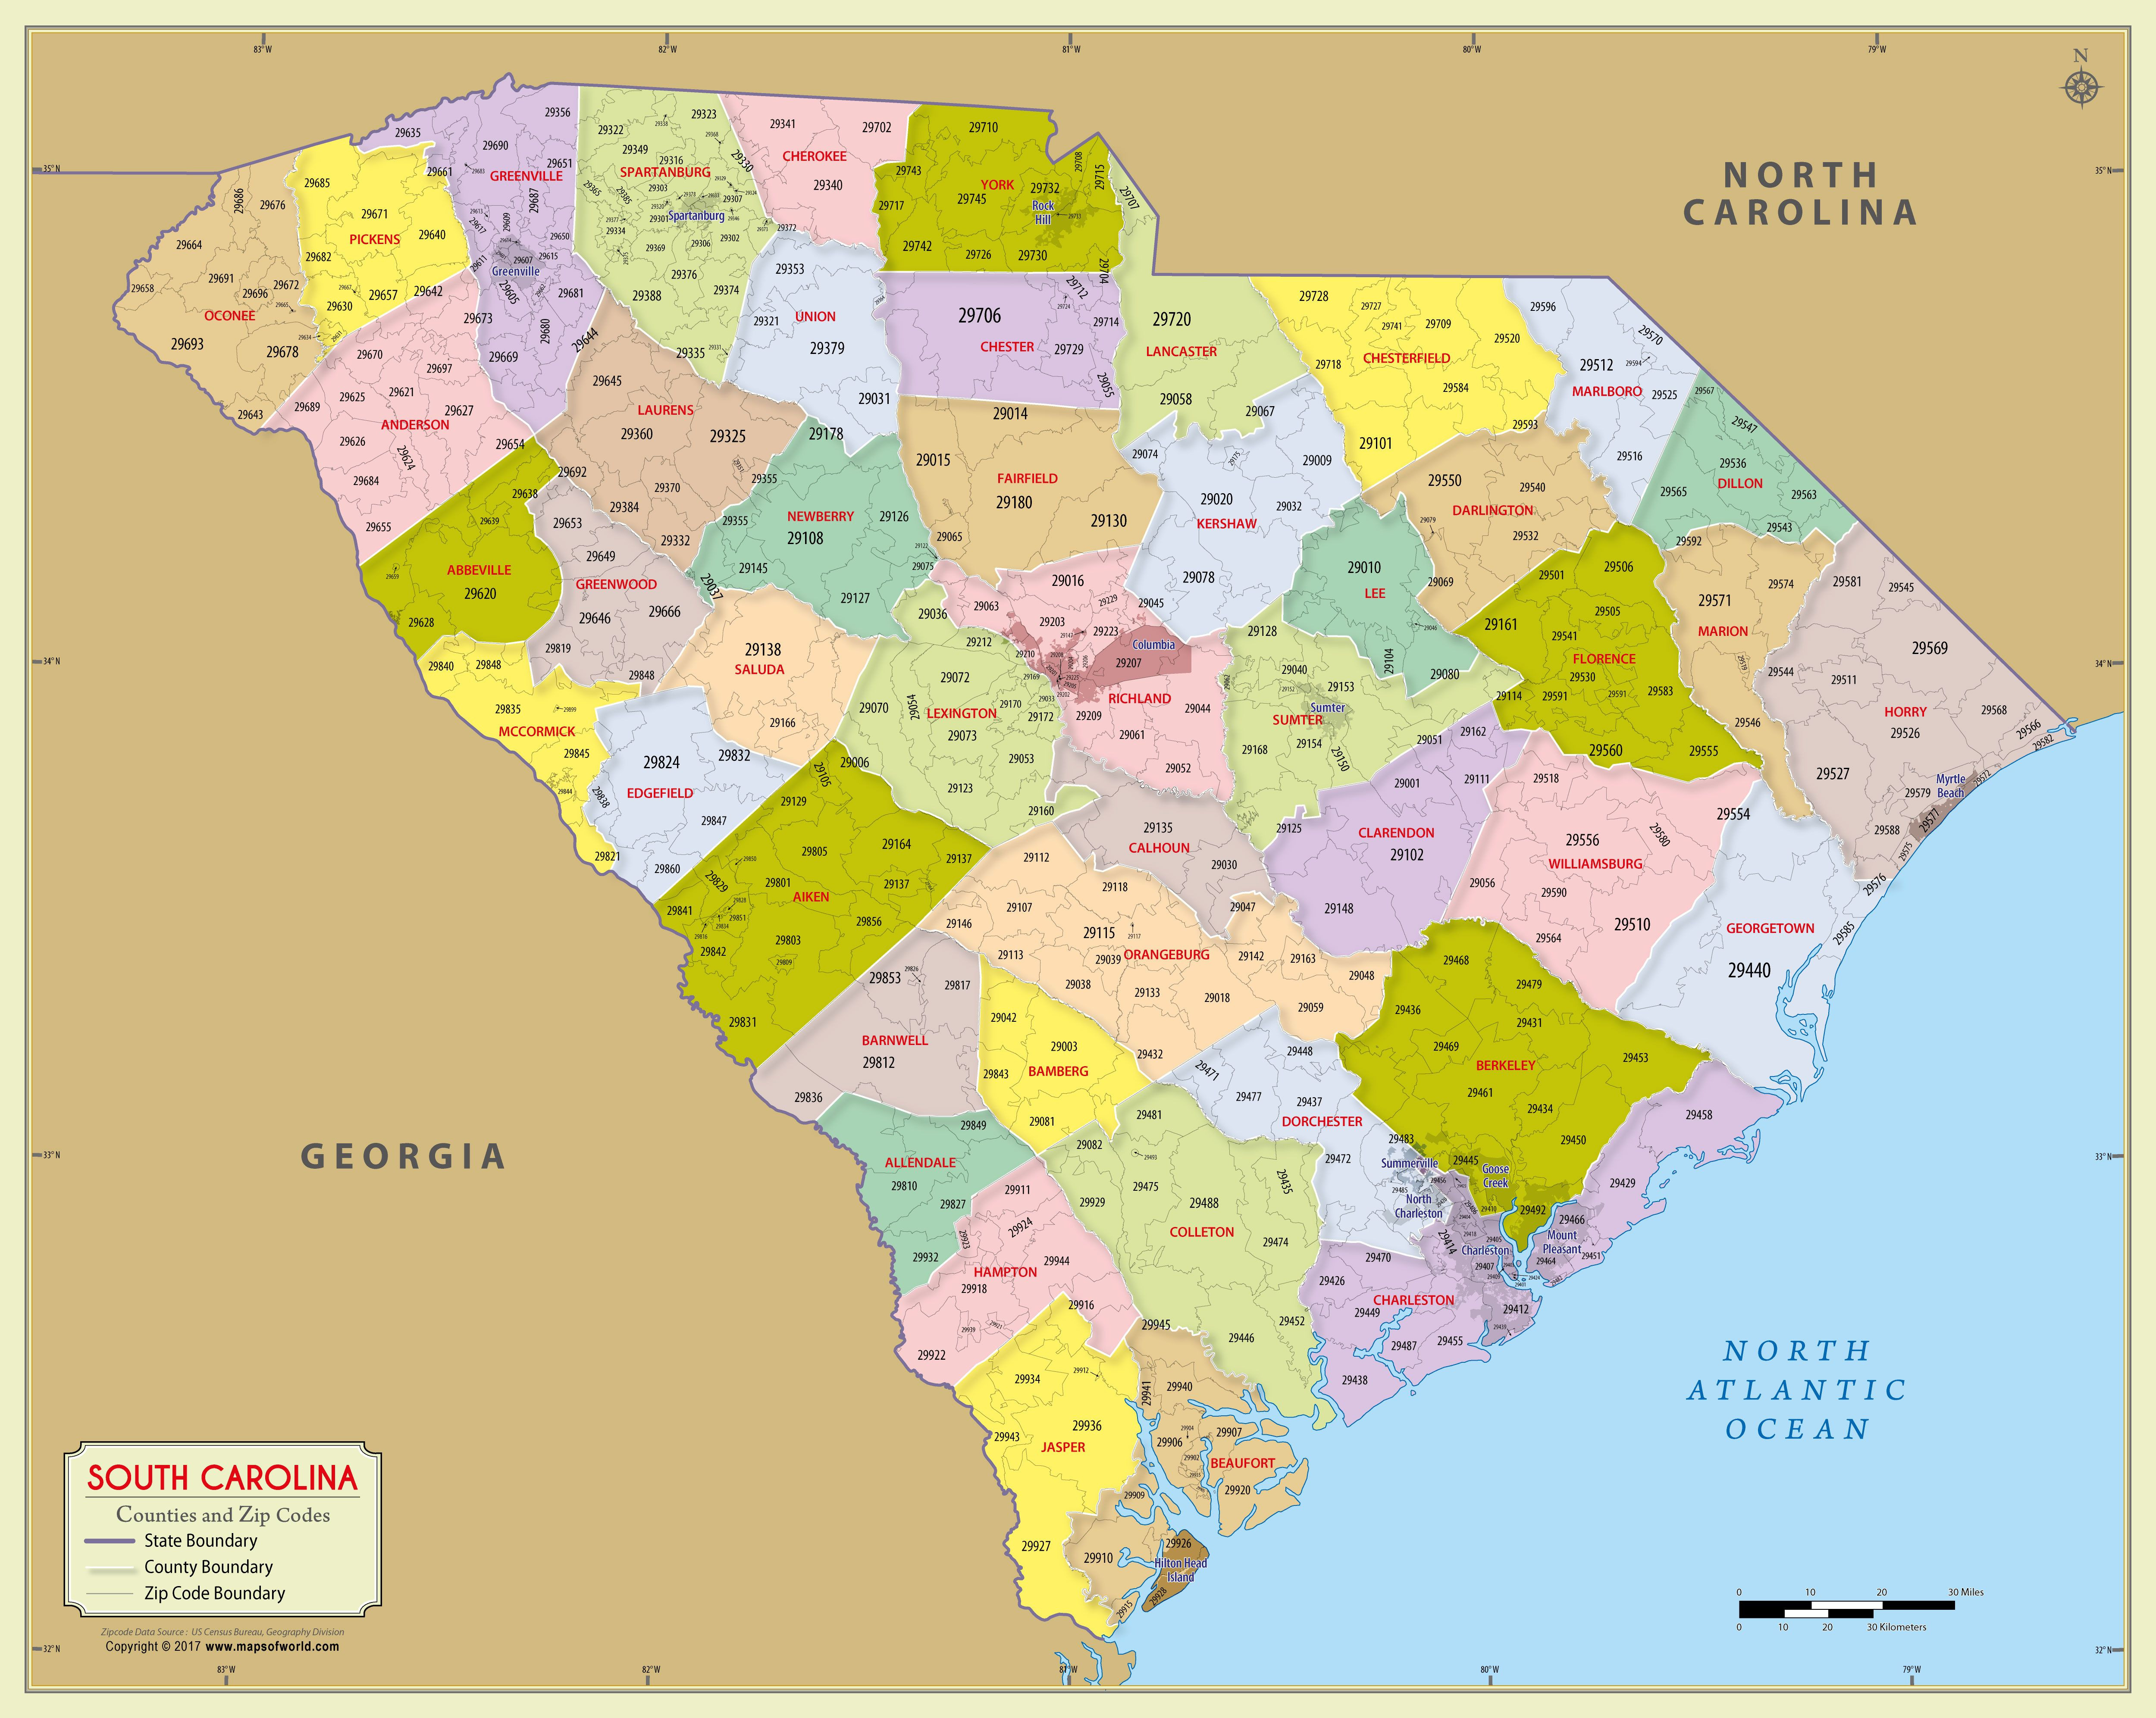 South Carolina Zip Code Map With Counties 48″ W x 38″ H